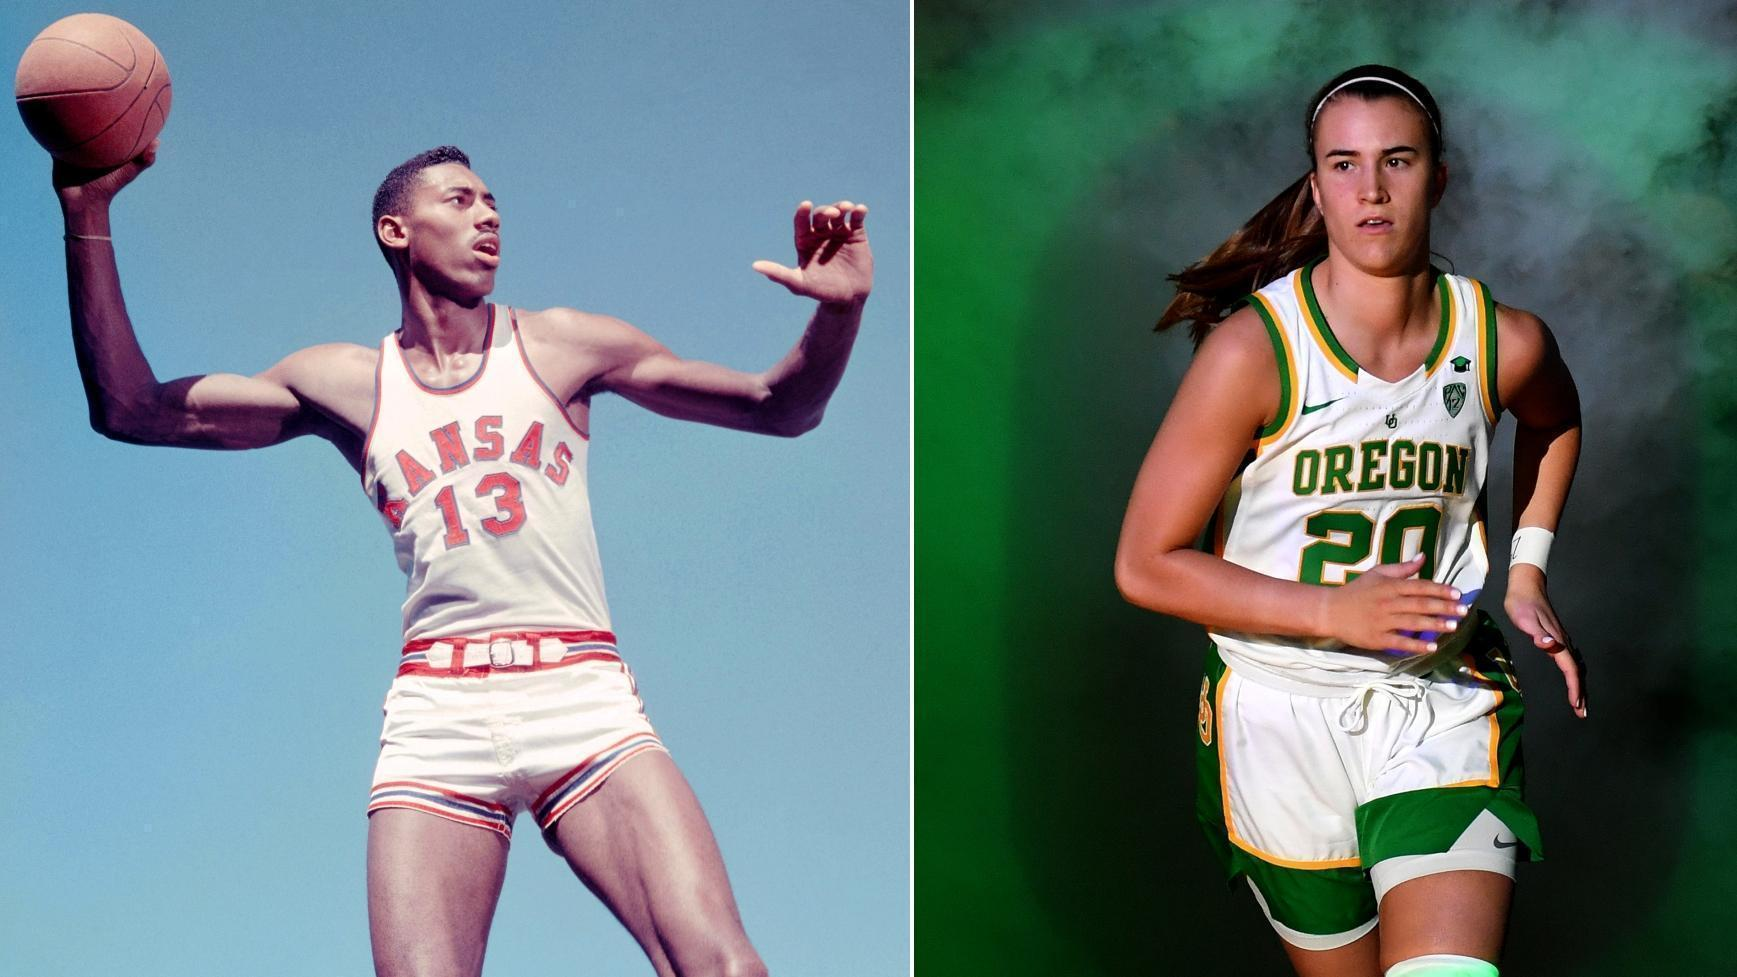 Chamberlain or Ionescu? Who had the better college career?